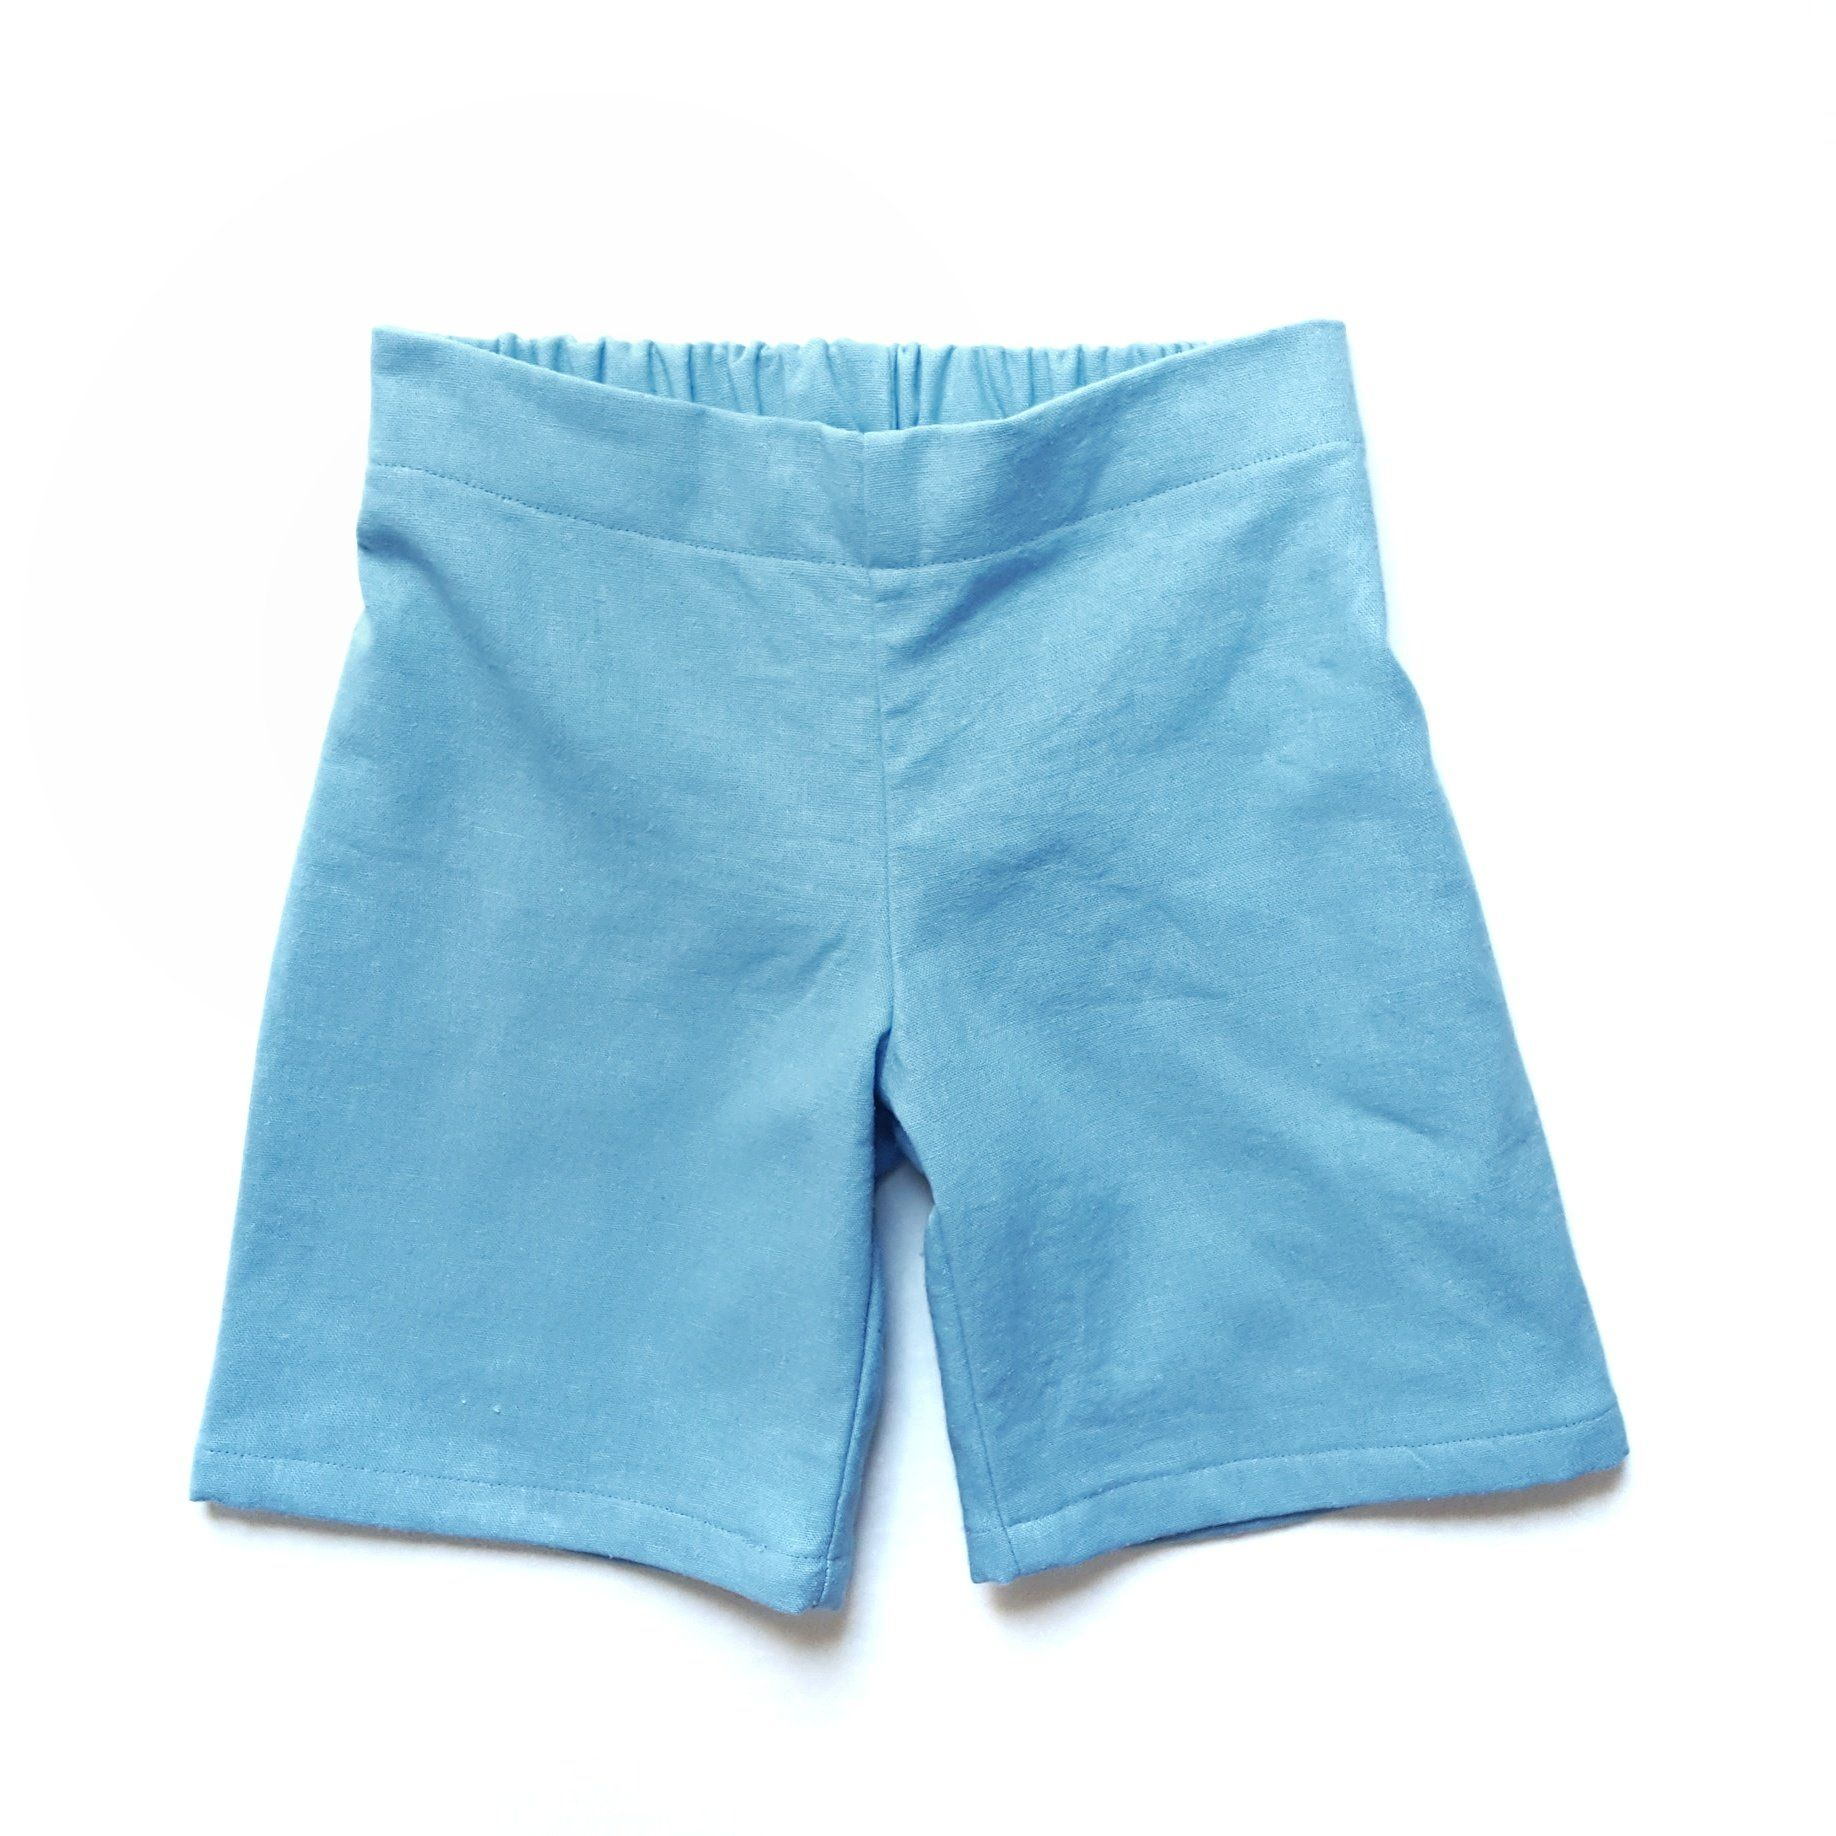 The Tristan Shorts